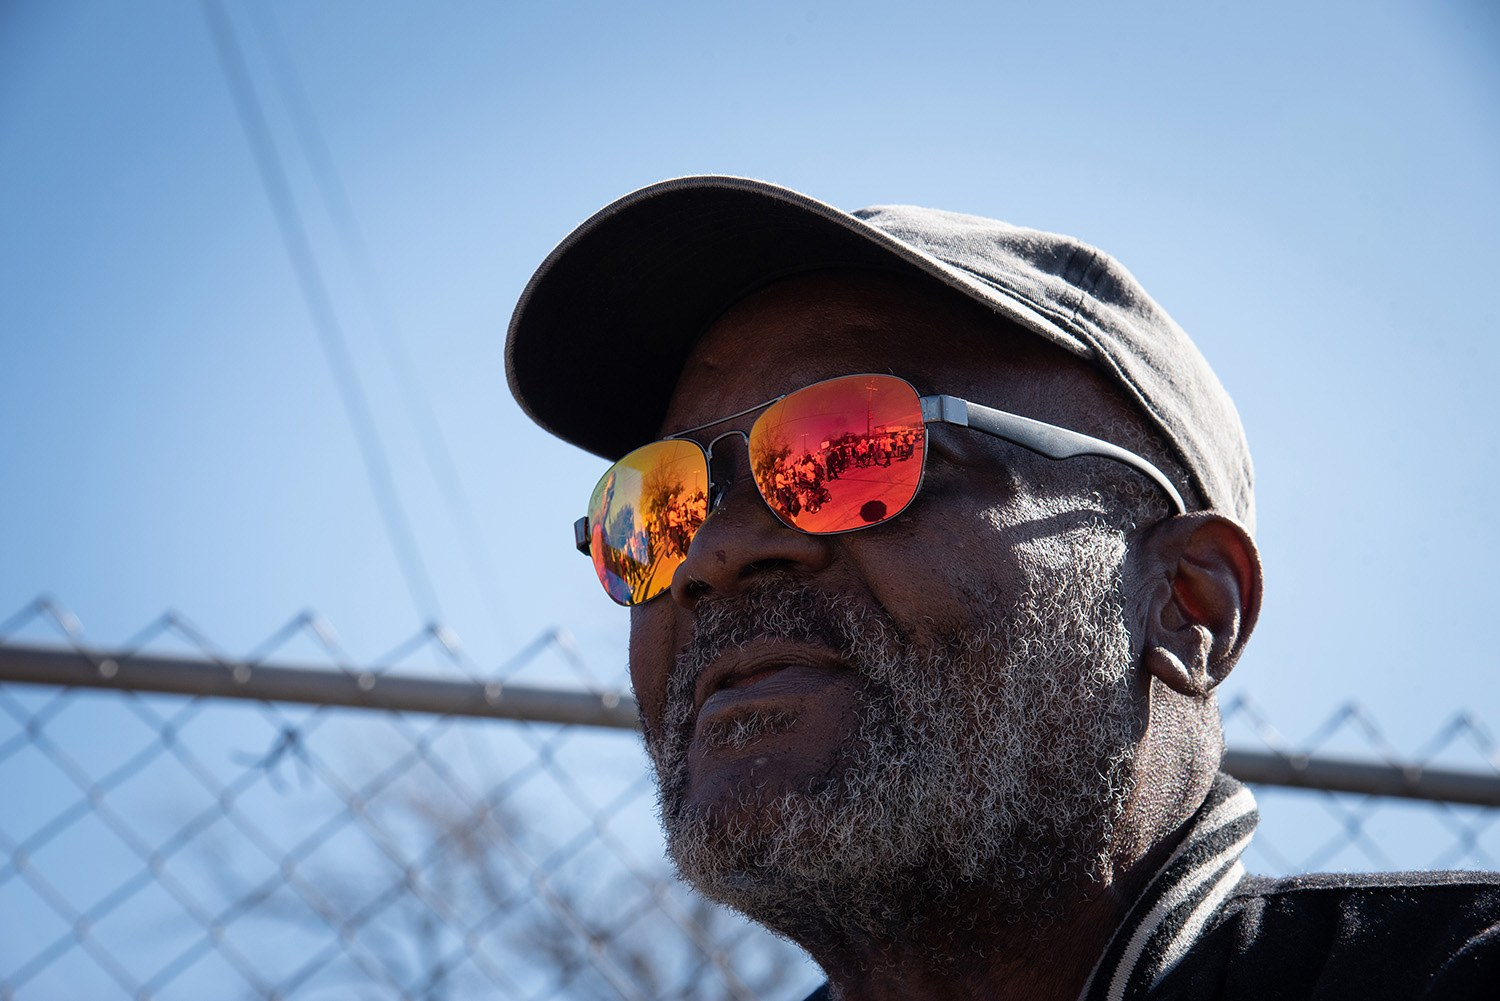 Charles Thorton, 66, watches the crowd walk by during the Martin Luther King, Jr. March on Jan. 20, 2020. <b><em>Photo by V. Finster | Heron contributor</em></b>